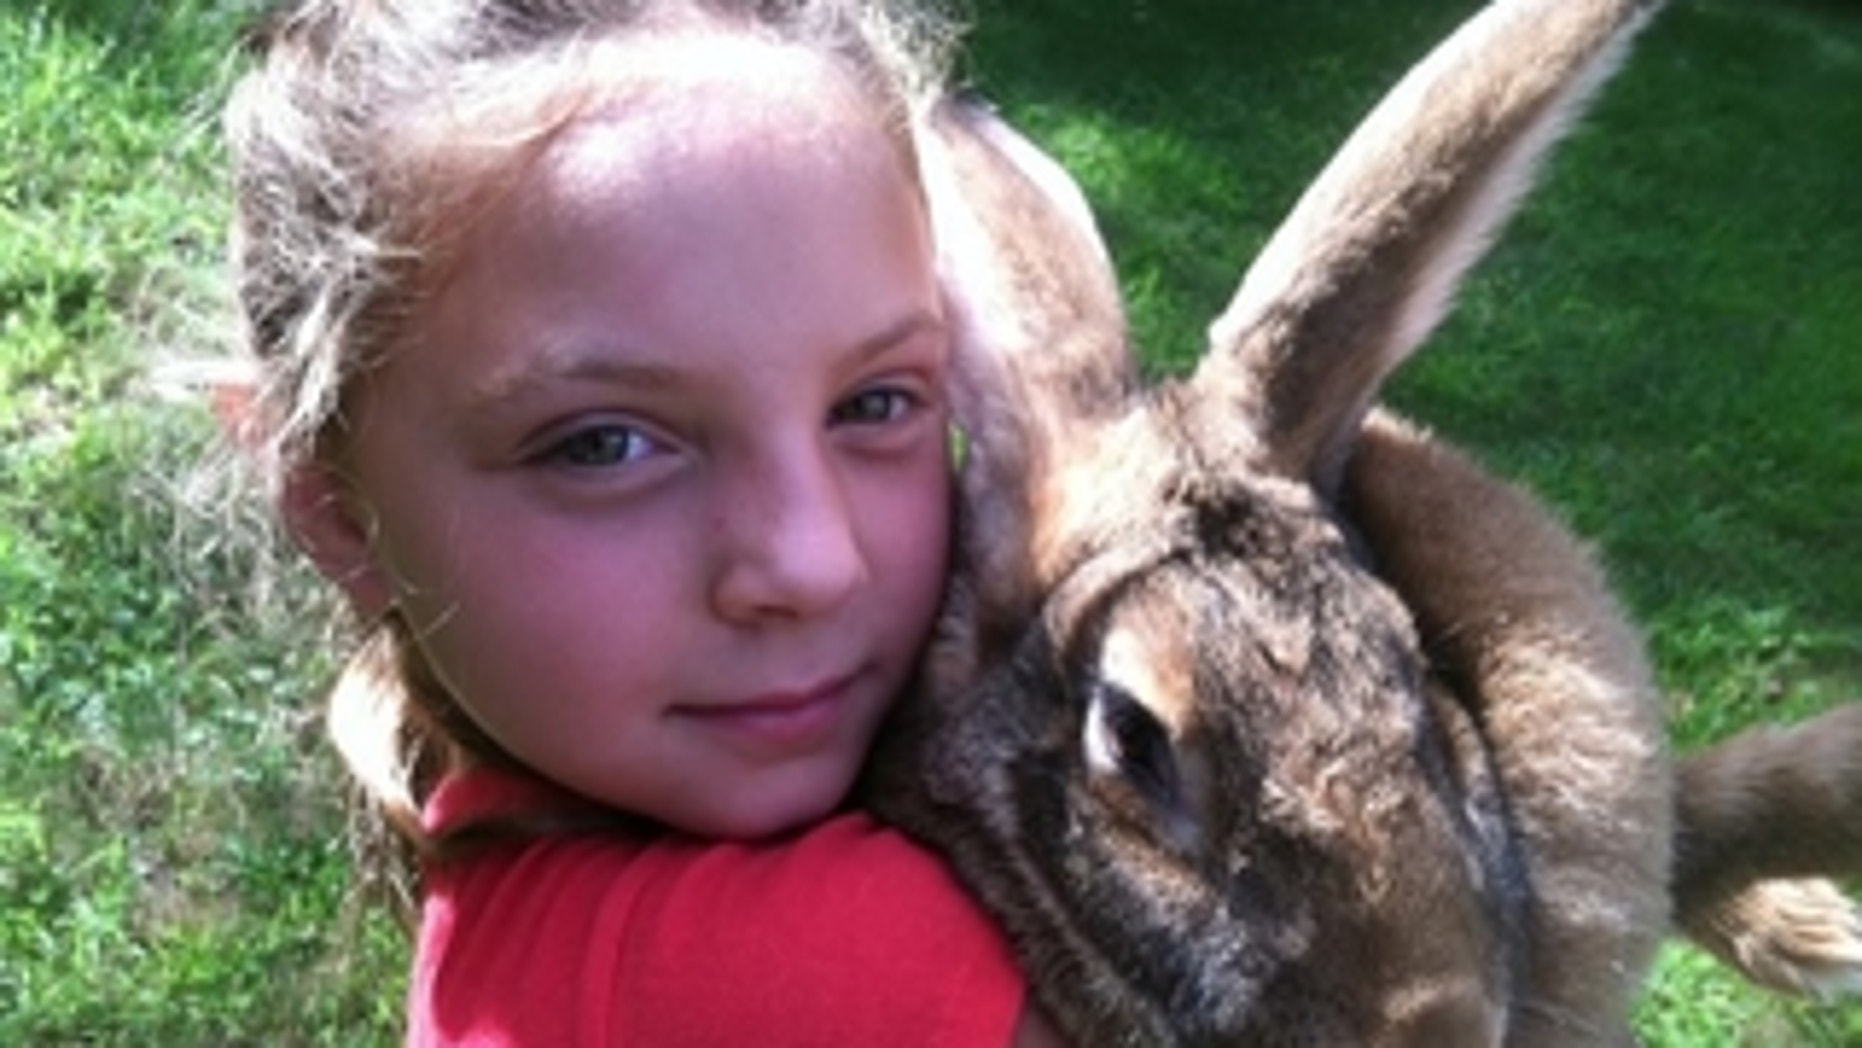 """""""I don't want the bunny to go,"""" Kayden Lidsky said, according to an online petition. (Change.org)"""